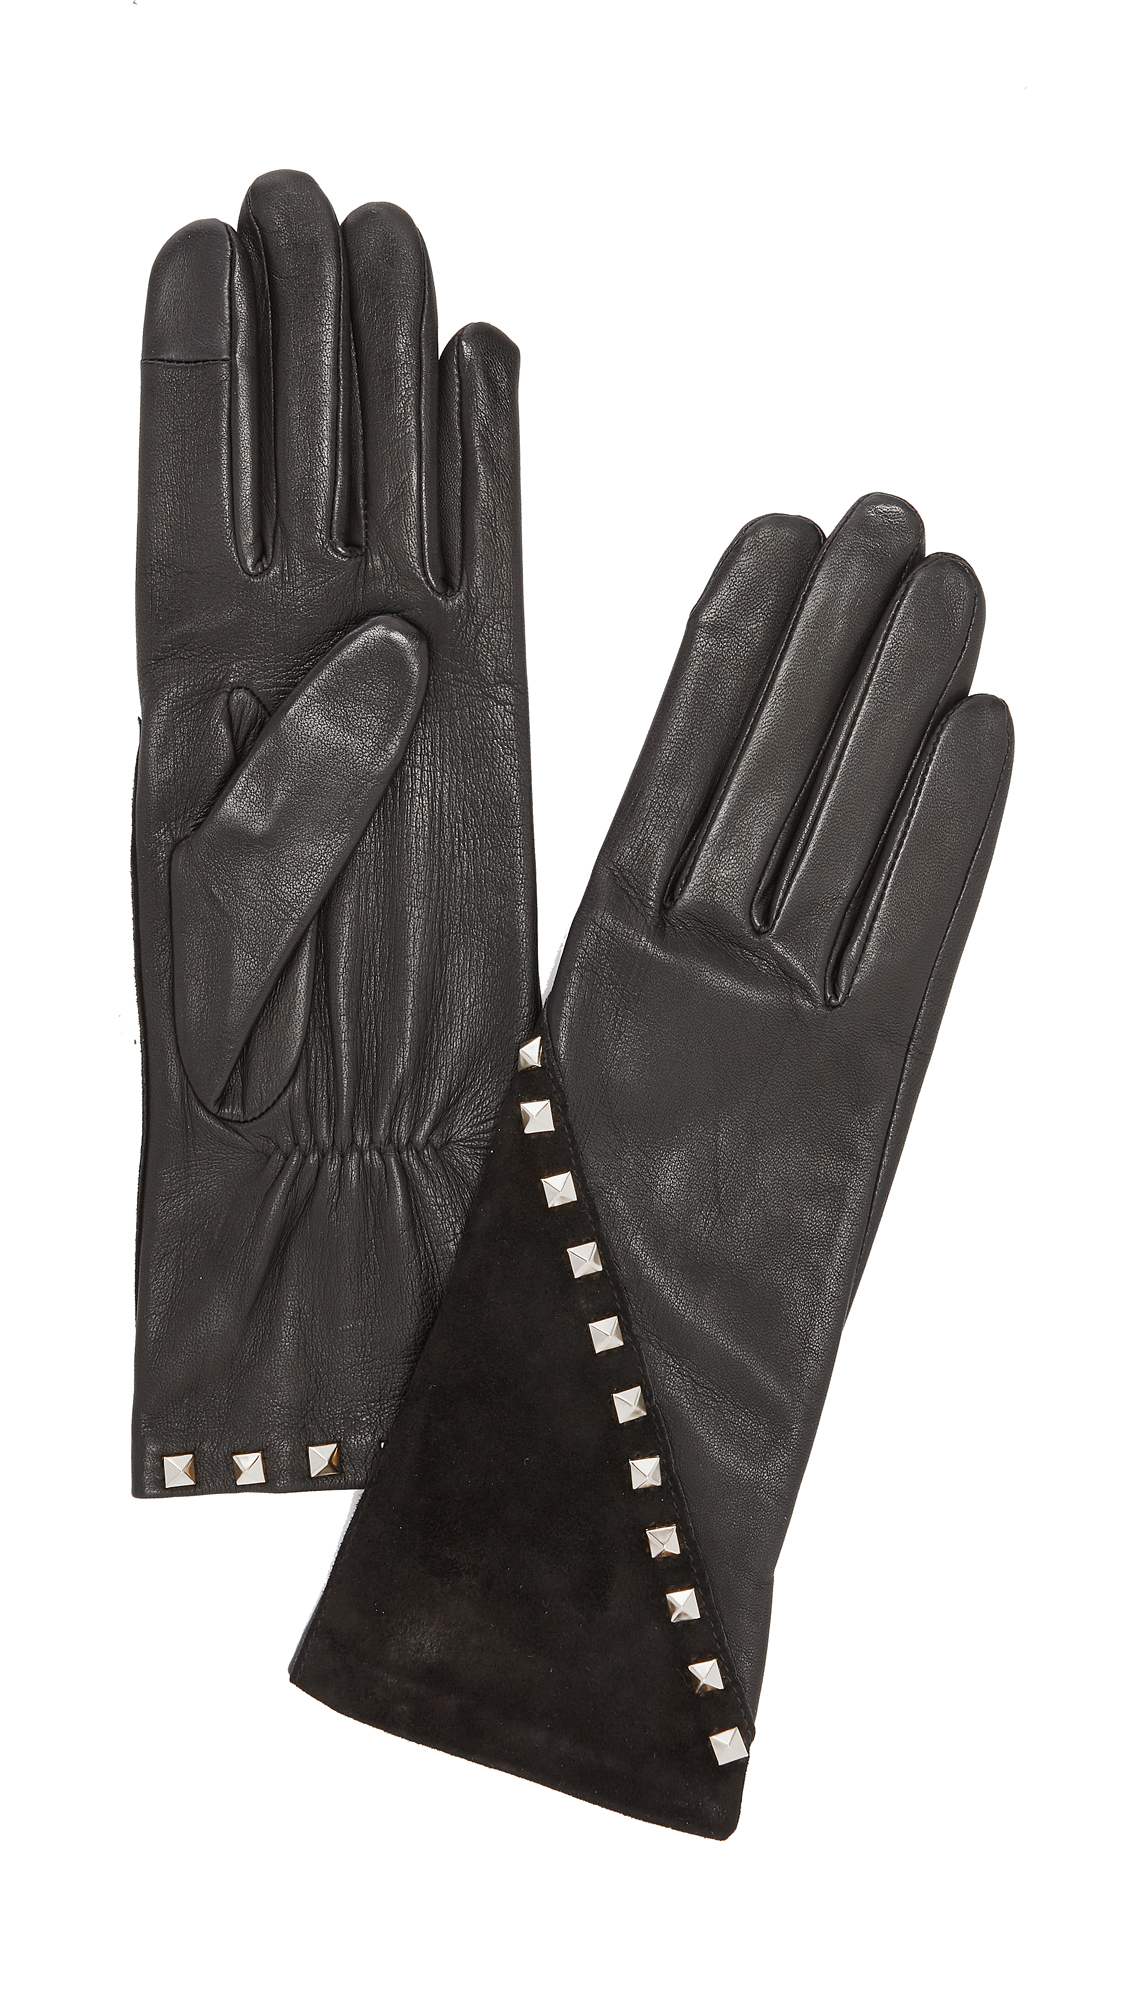 Agnelle Coralie Stud Leather Gloves - Black